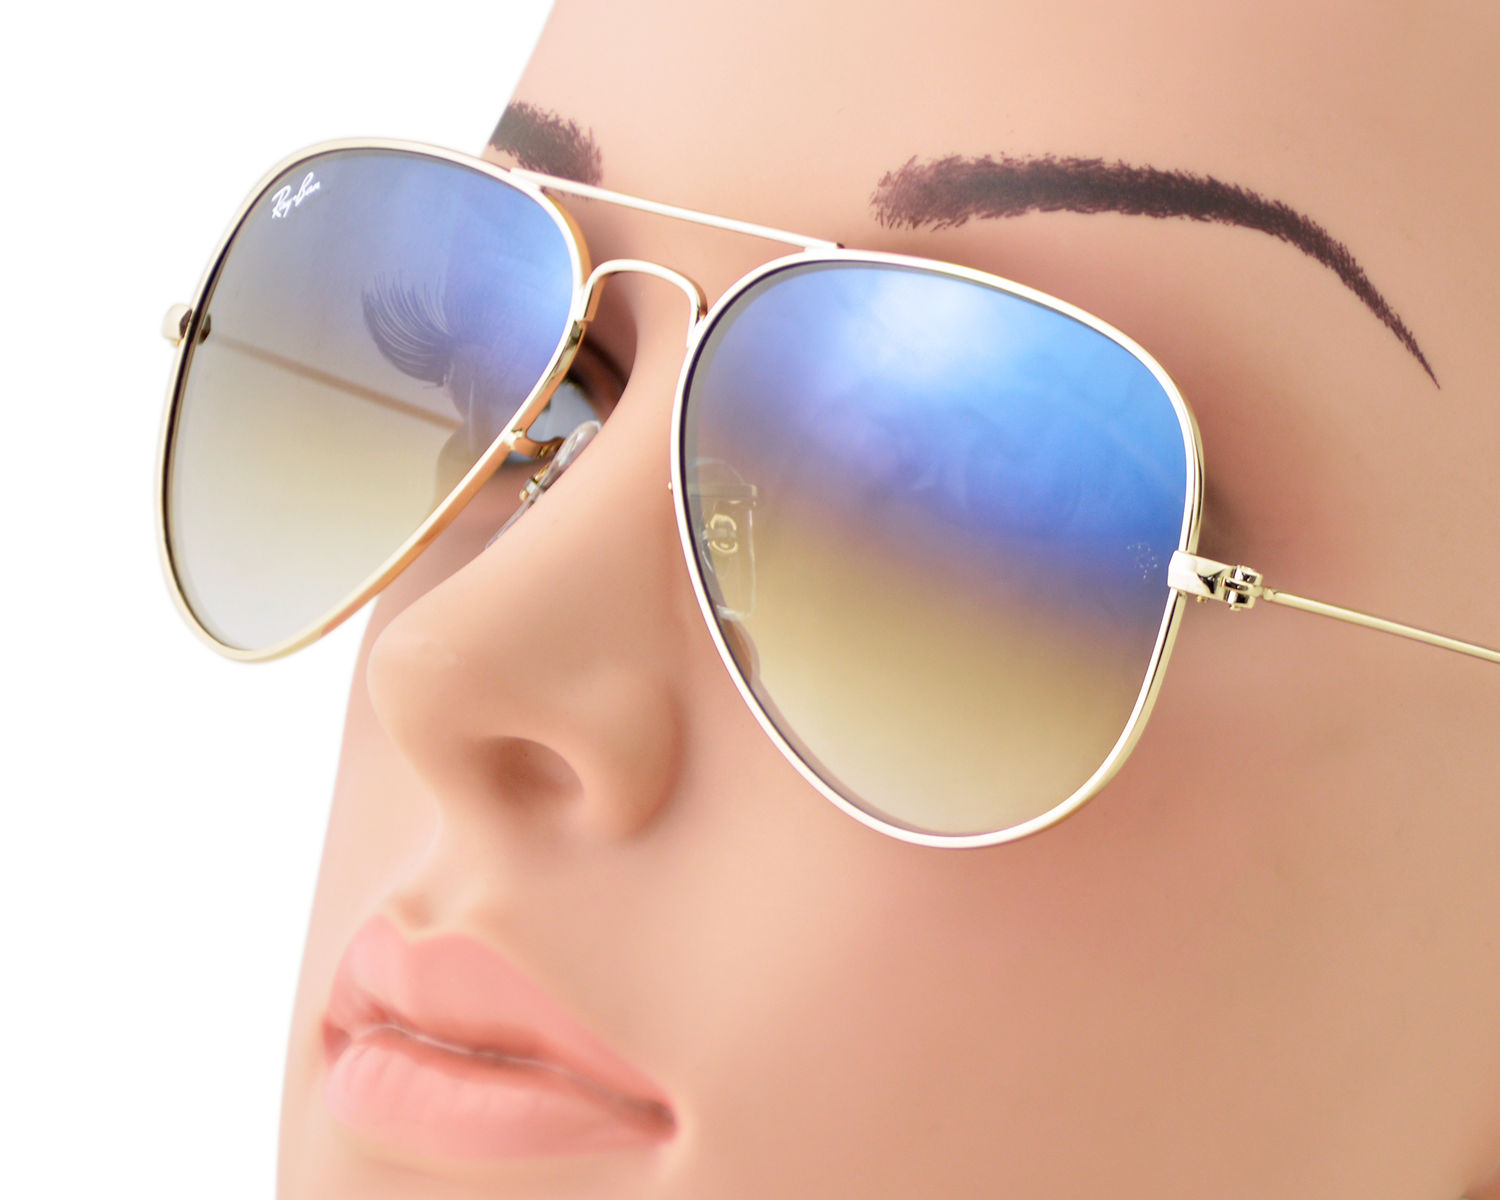 b7bb1c7171ab1 Ray-Ban RB3025 Aviator Gradient 001 3F Gold Frame Light Blue Gradient  Lenses Unisex Sunglasses 58mm